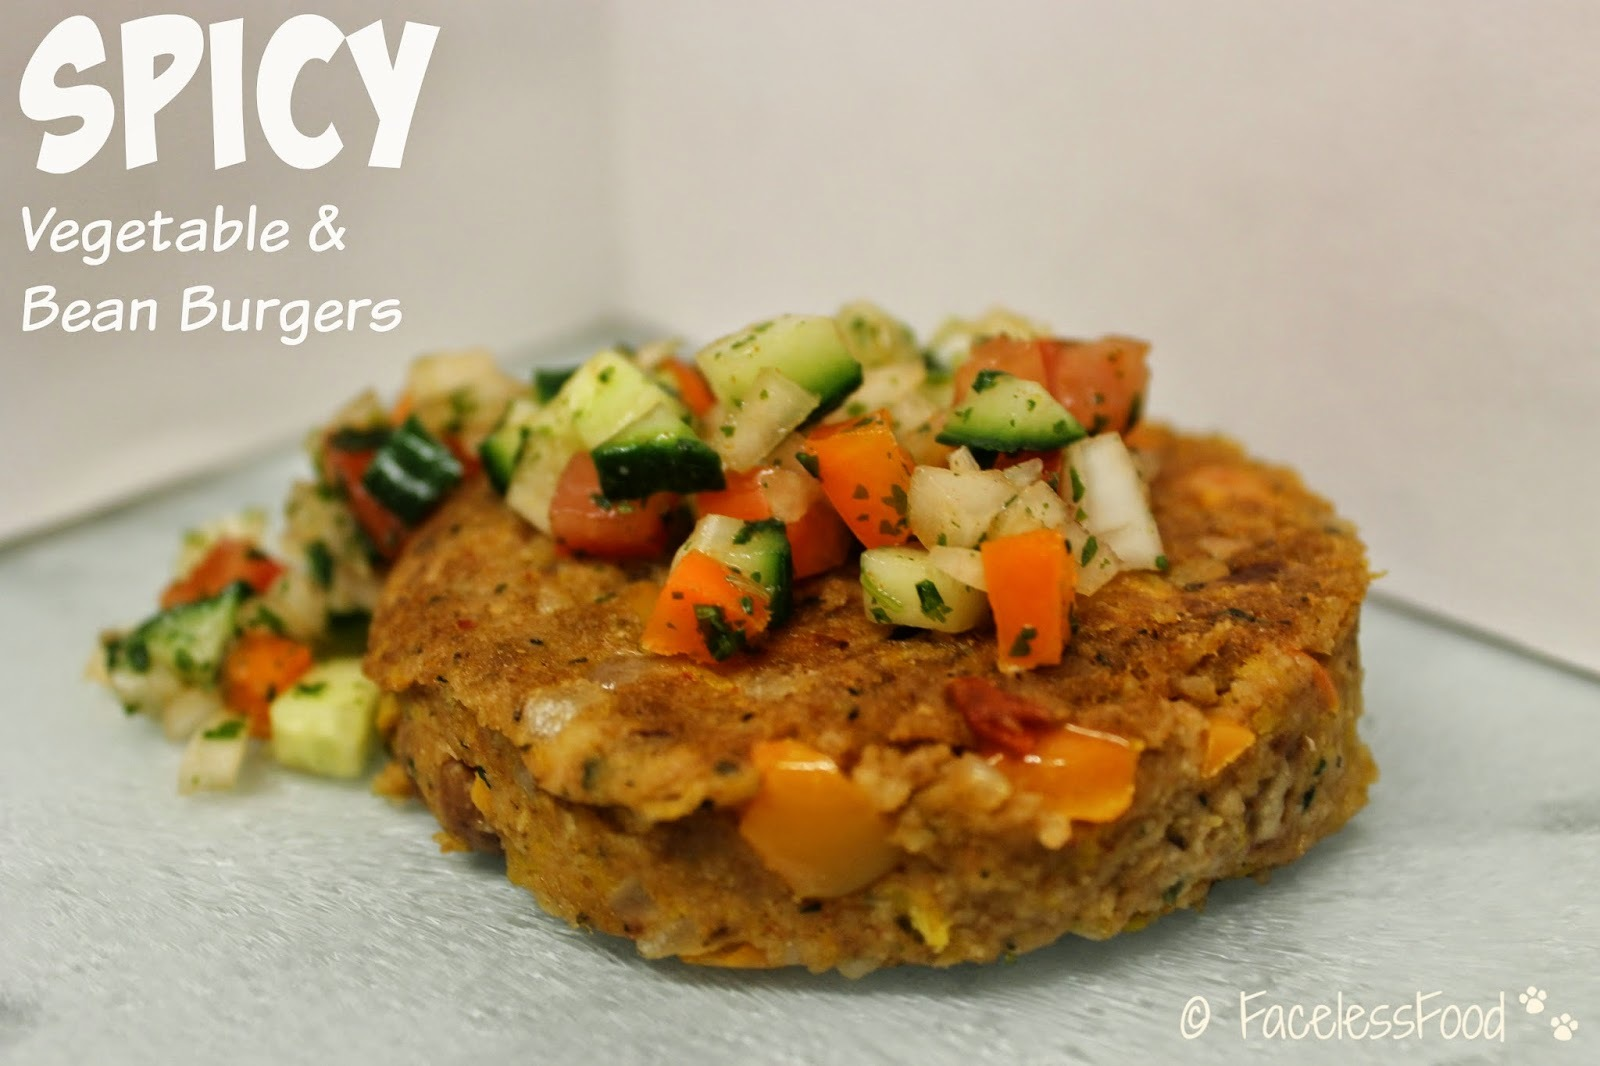 Spicy Vegetable & Bean Burgers